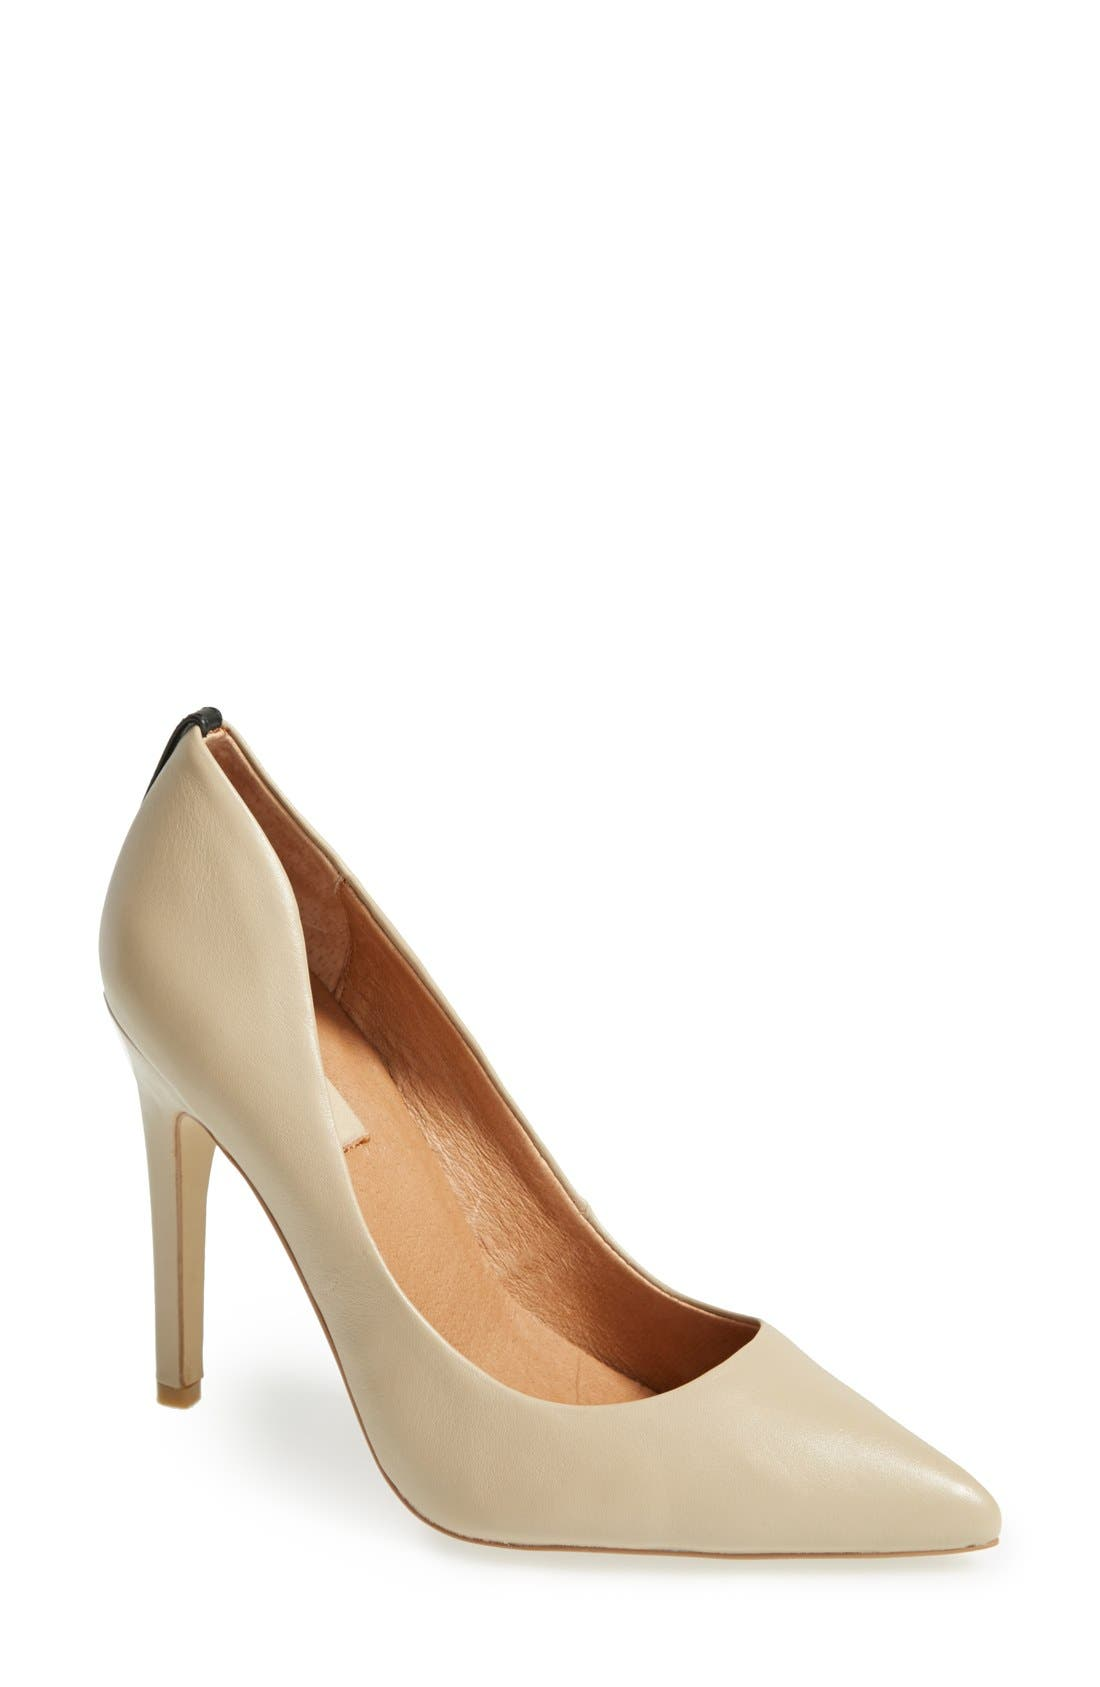 'Jolie' Pointy Toe Pump,                         Main,                         color, Taupe